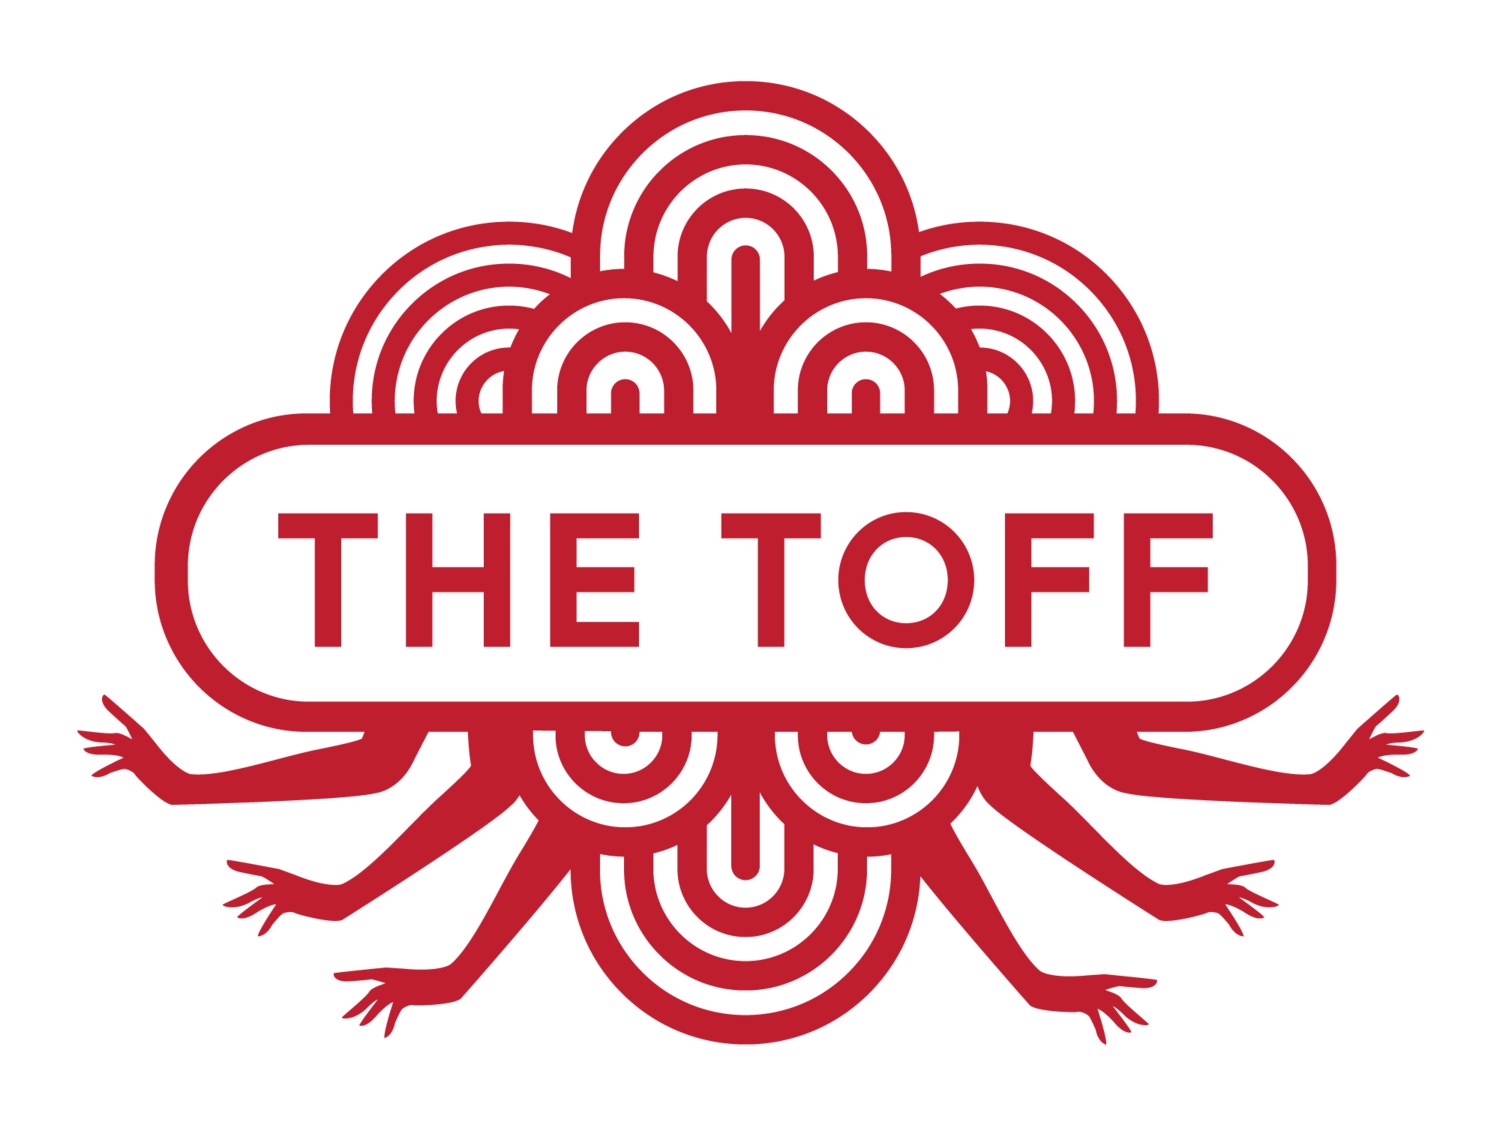 THE TOFF IN TOWN